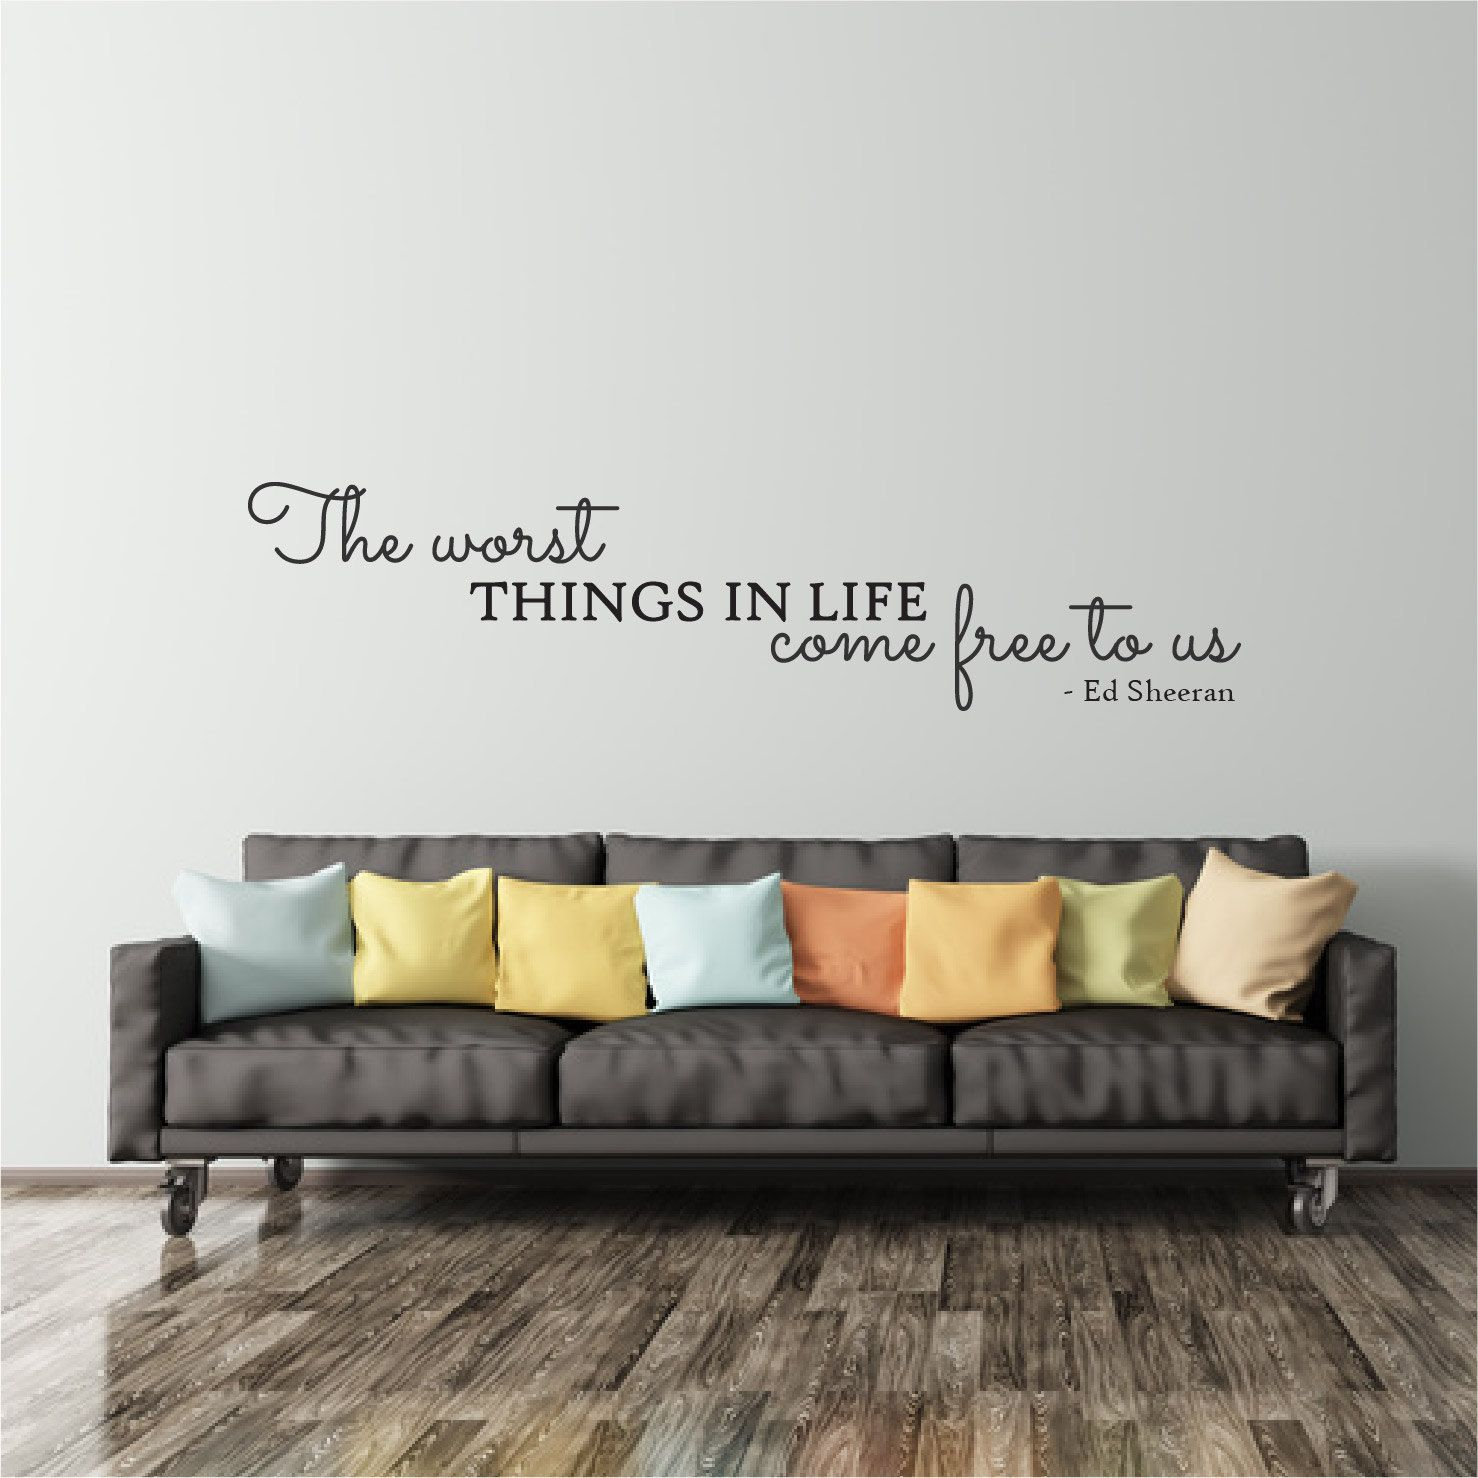 Ed Sheeran Wall Decal Quote Above Bed Decal Bedroom Wall Sticker - Wall decals above bed